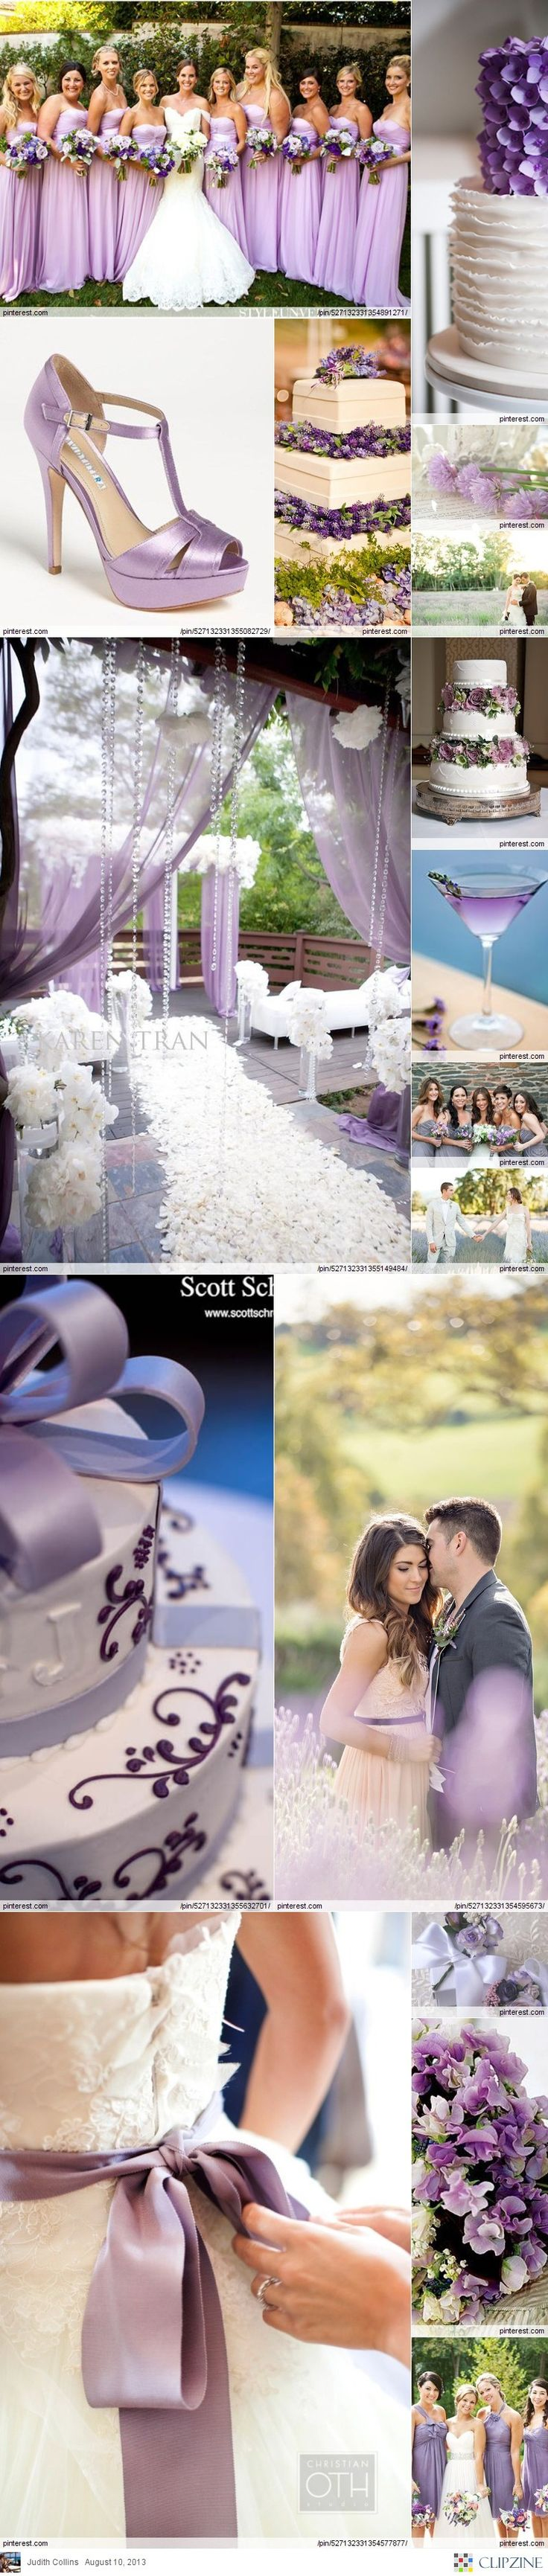 Lavender Weddings- perfect color scheme.  #weddings #weddingwednesday #wedding.